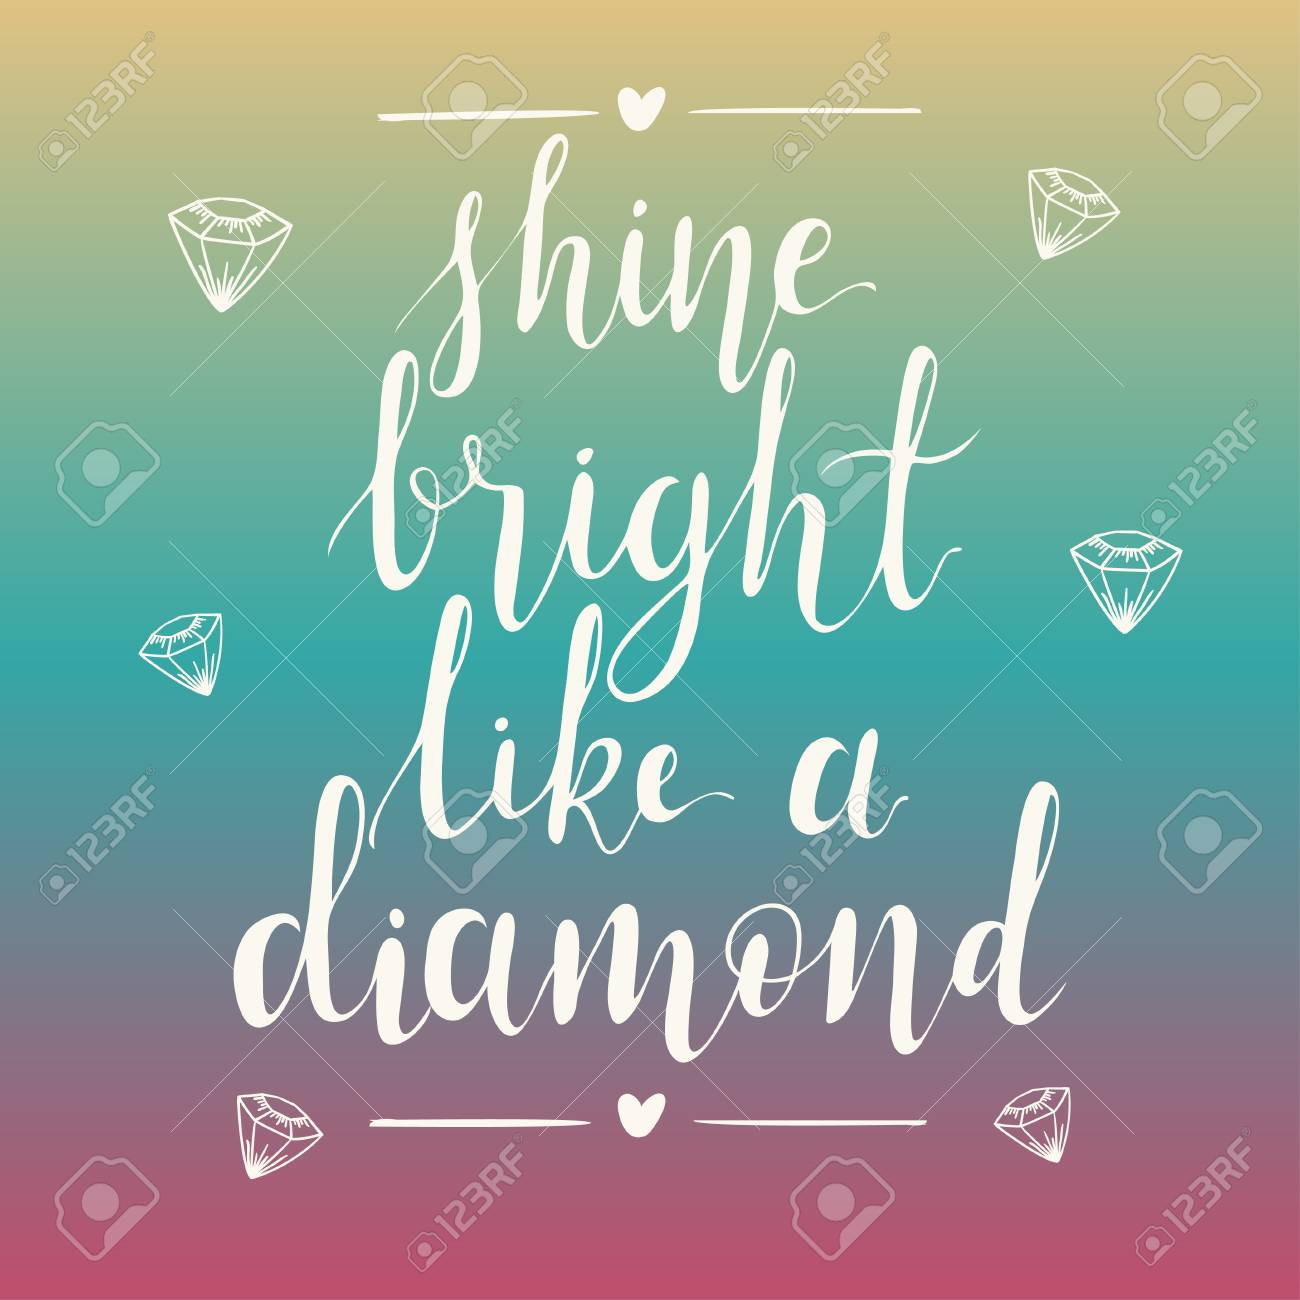 Shine bright like a diamond hand lettering quote on gradient..